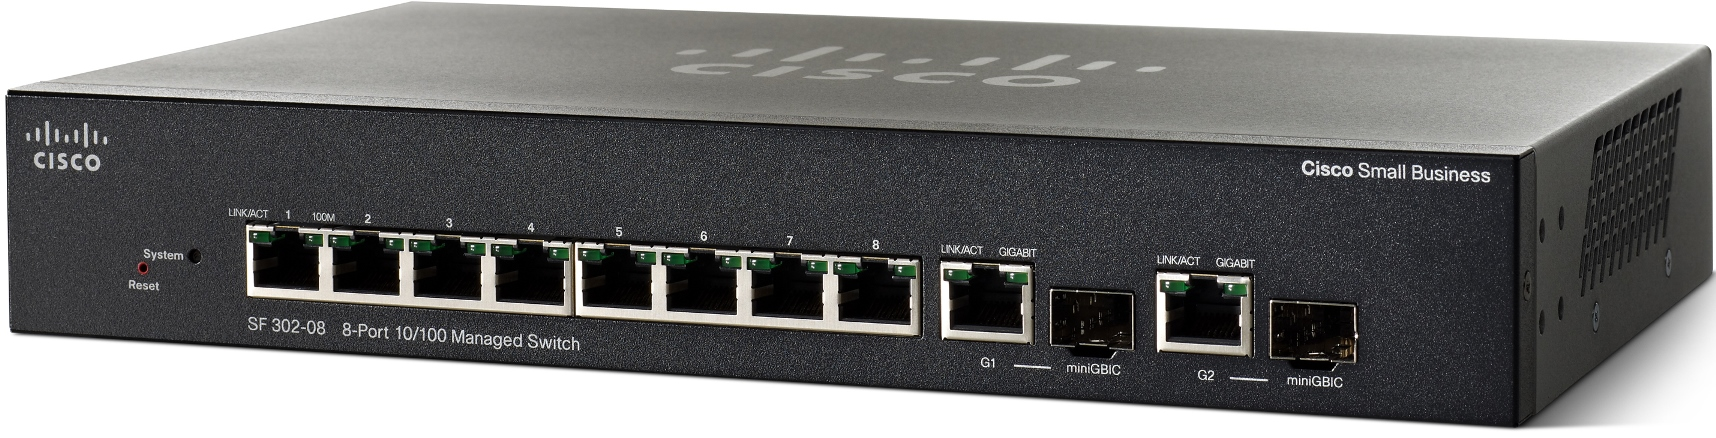 Cisco SRW208G-K9 SF302-08 8-port 10/100 Managed Switch with Gigabit Uplinks